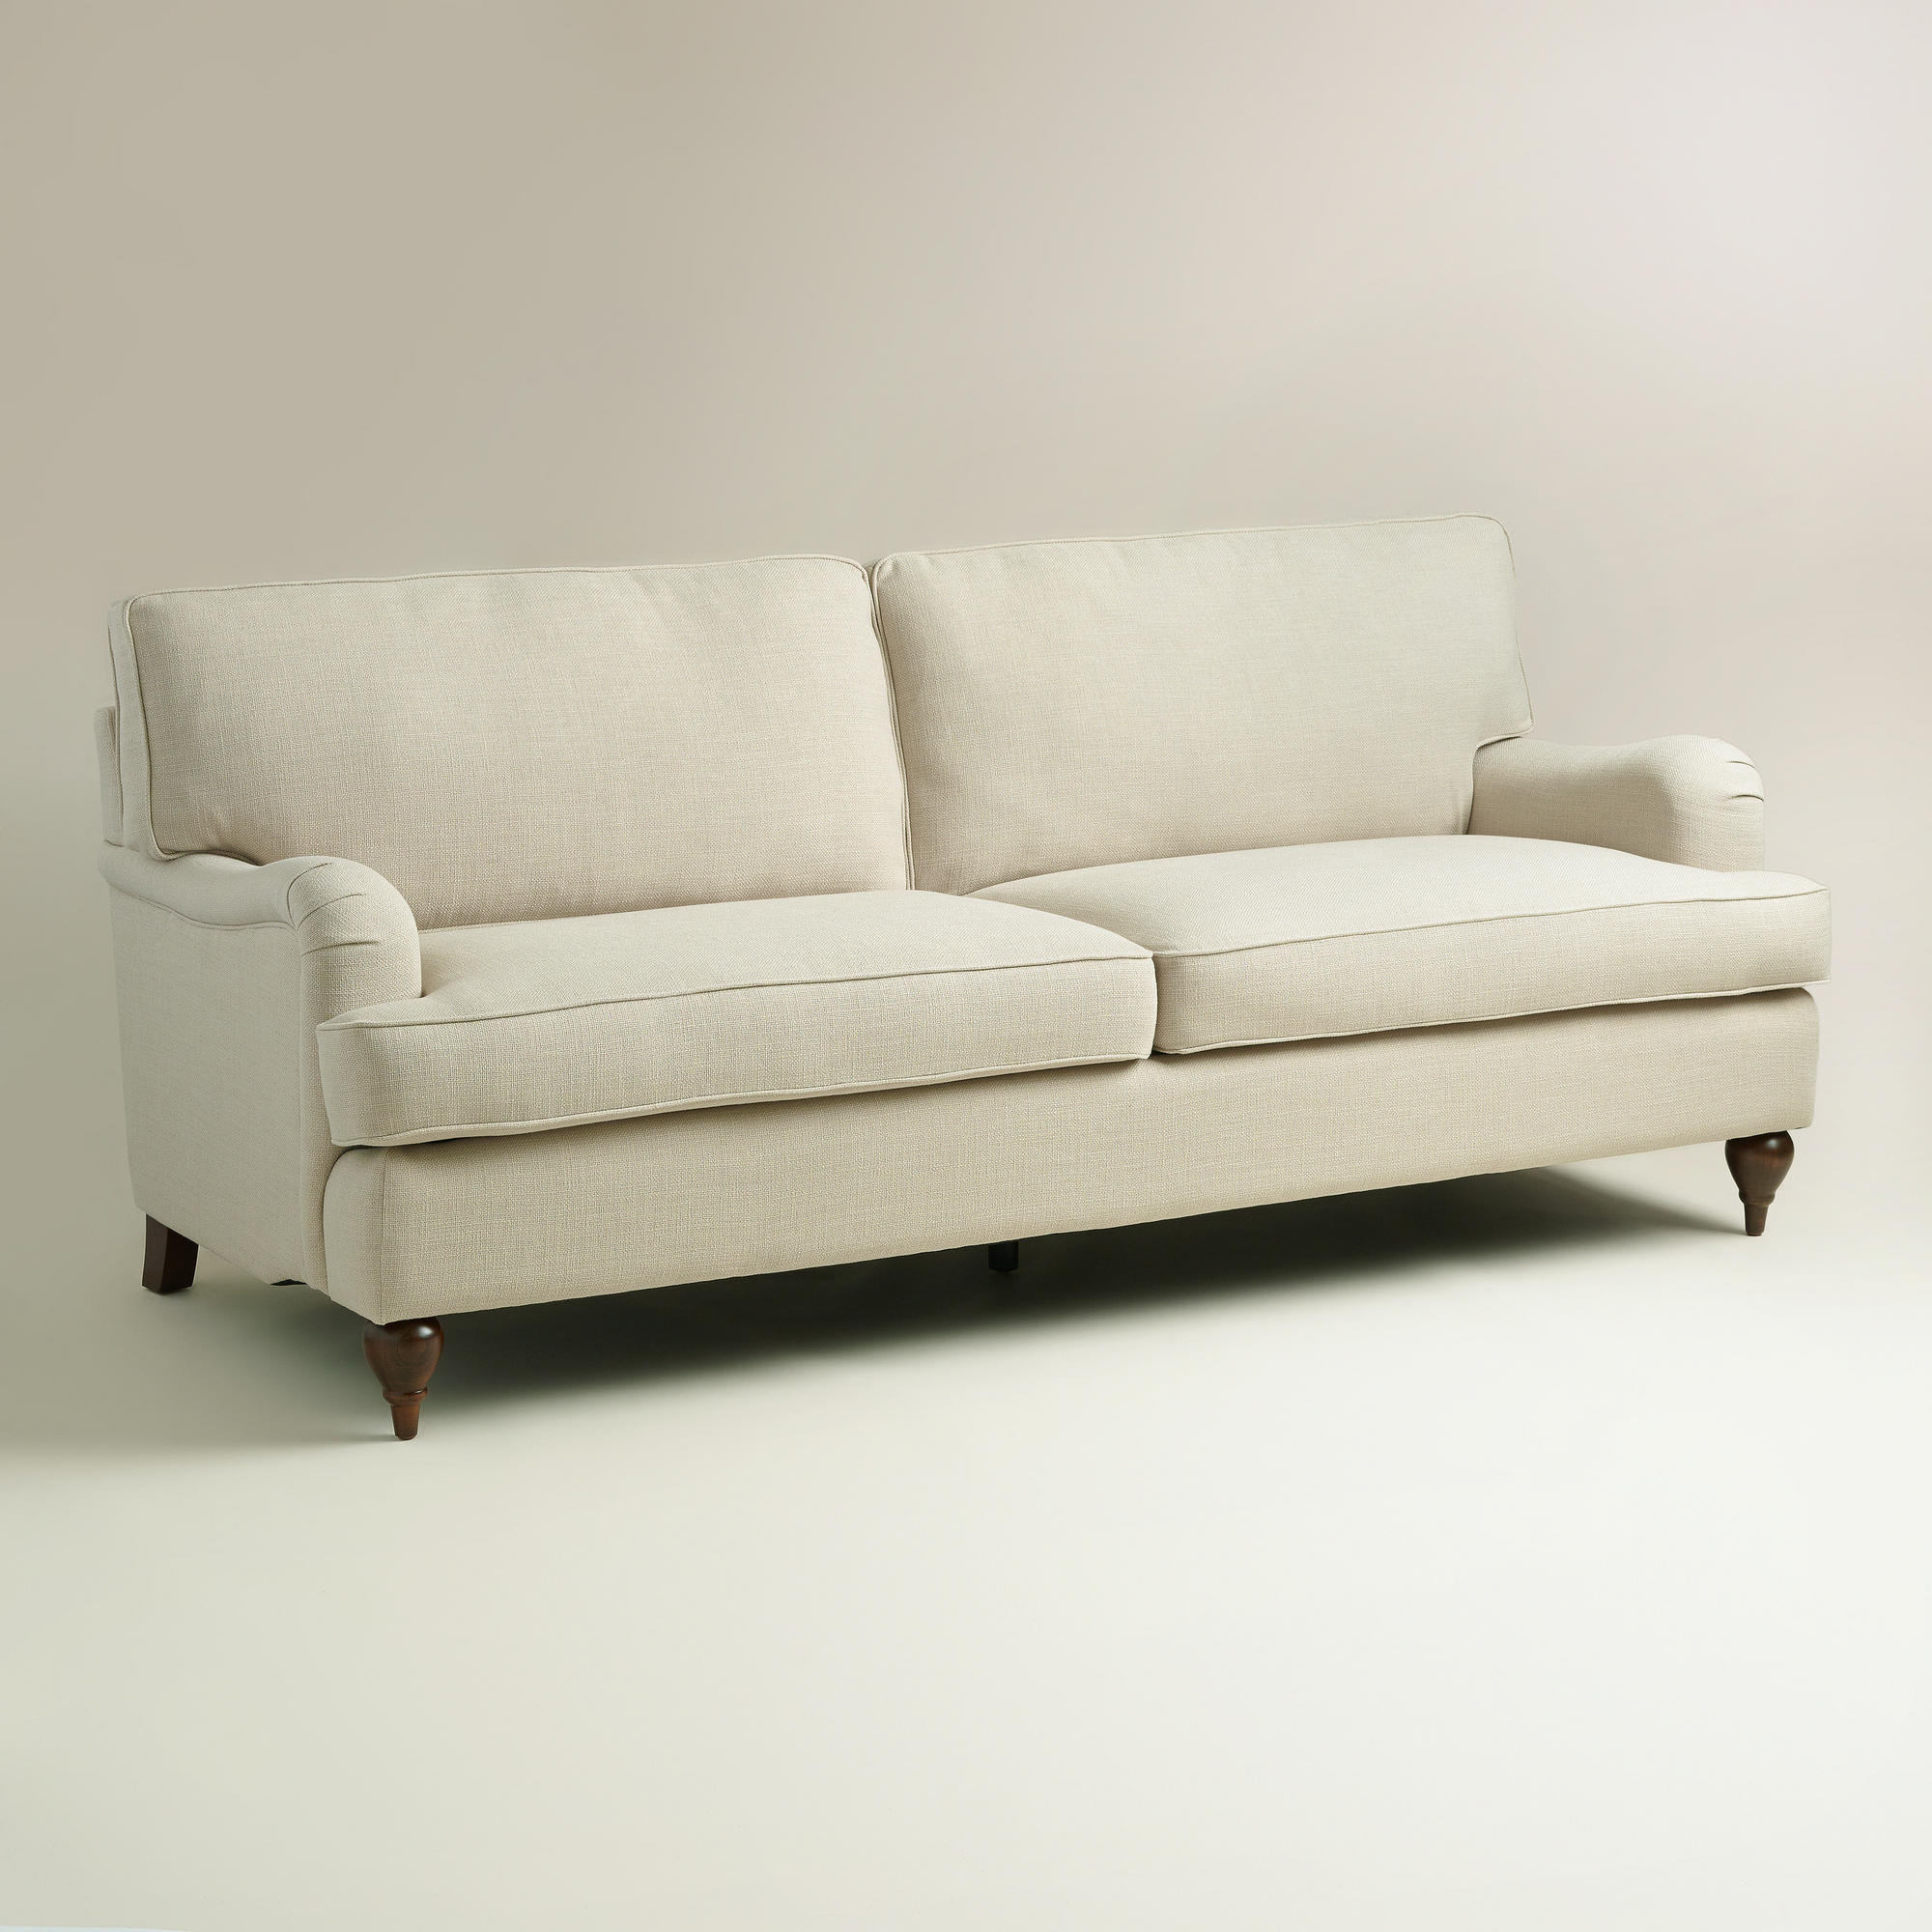 Sand Linen Maryn Sofa From Cost Plus World Market Furniture